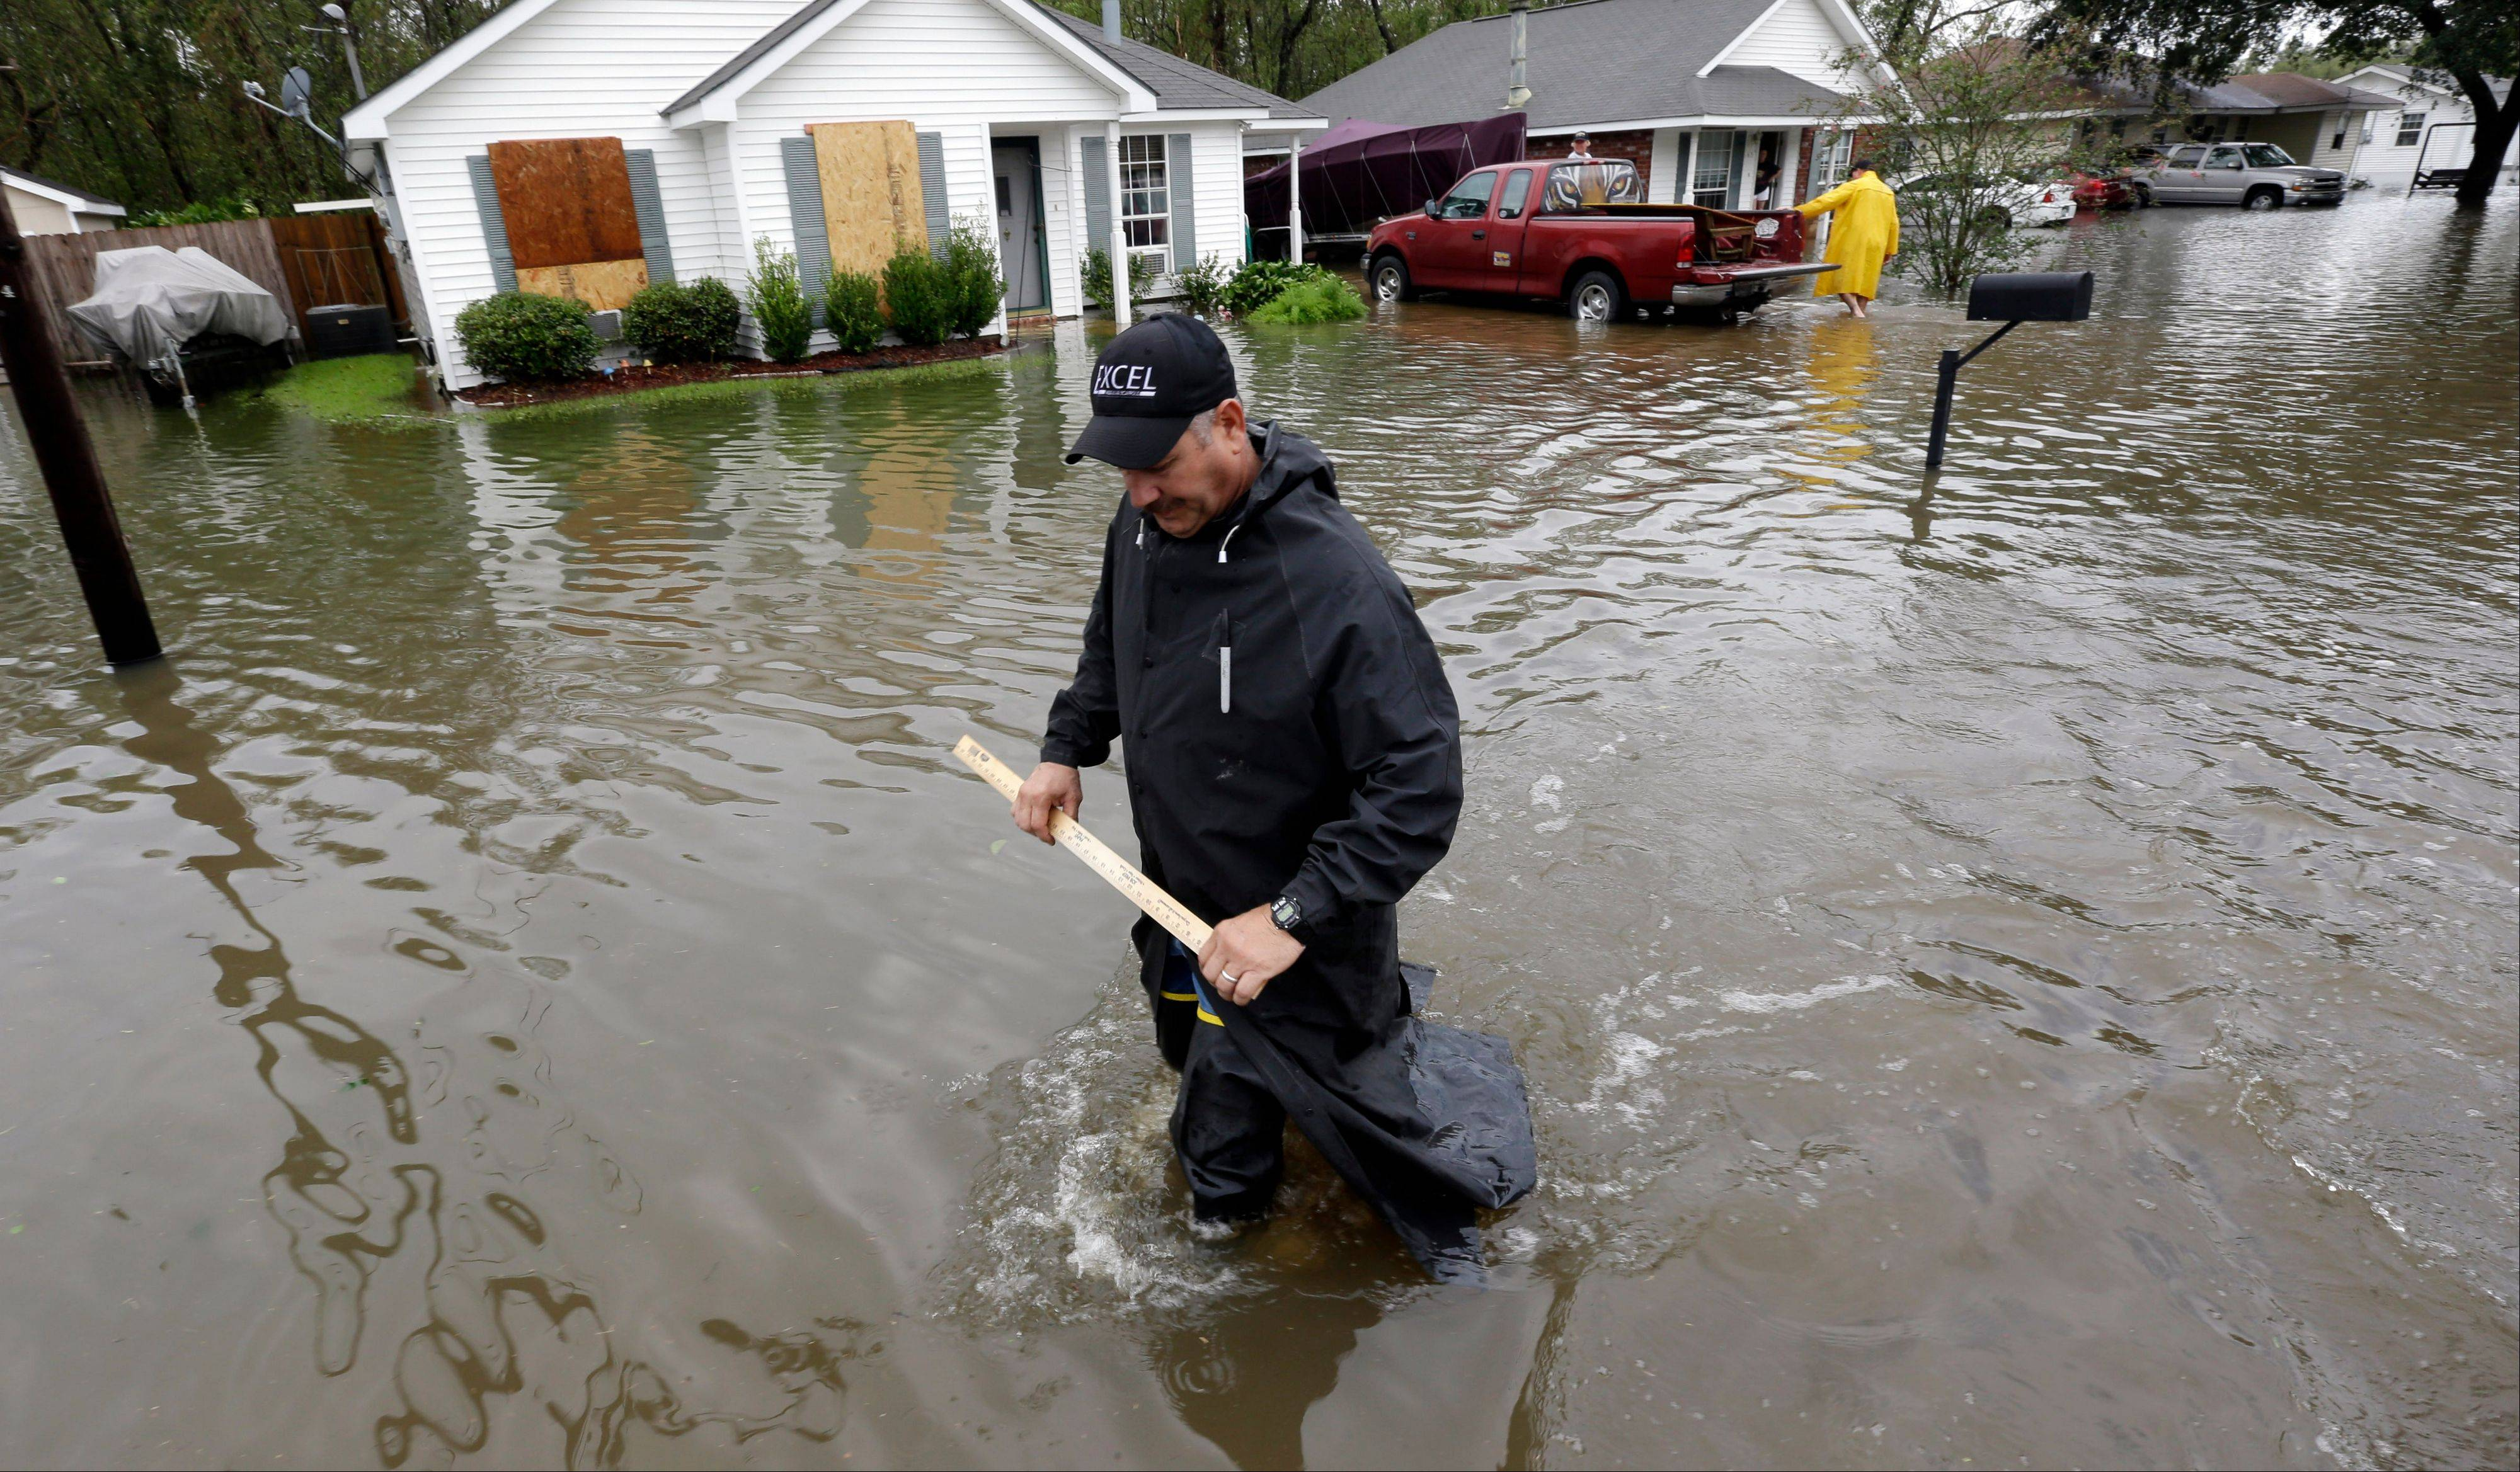 Myron Romondet takes measurements of the flood waters on his street, Thursday, Aug. 30, 2012, in LaPlace, La.